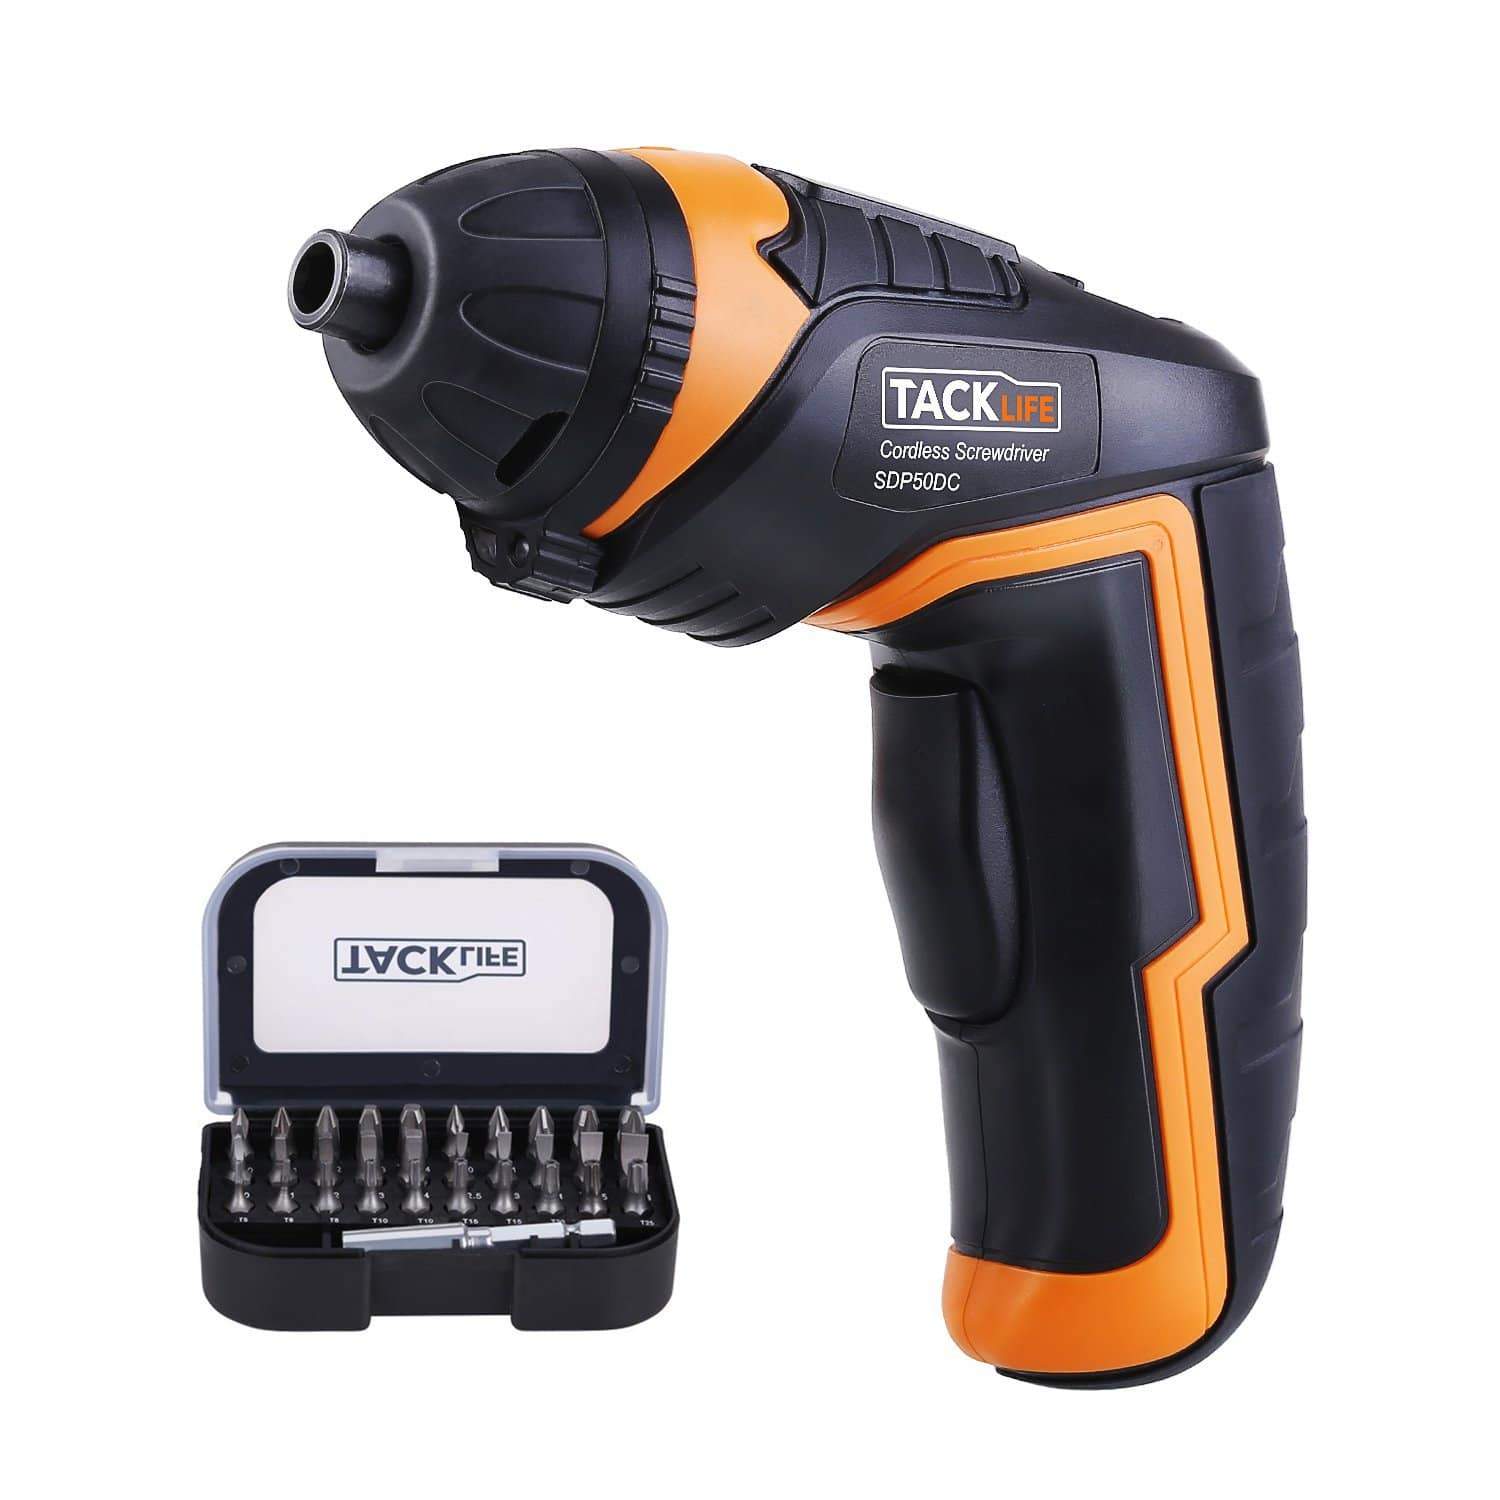 best cordless screwdriver,	 electric screwdriver, cordless screwdriver,	 power screwdriver, cordless screwdriver reviews,	 cordless screwdriver review,	 cordless screwdriver with clutch,	 cordless electric screwdriver reviews,	 lithium screwdriver reviews,	 best electric screwdriver,	 cordless screwdriver torque,	 cordless screwdriver with light,	 cordless screwdrivers,	 battery screwdriver,	 battery operated screwdriver,	 battery powered screwdriver,	 best power screwdriver,	 small electric screwdriver,	 best cordless screwdriver ratings,	 compact cordless screwdriver,	 small cordless screwdriver,	 best cordless screwdrivers,	 power screwdriver reviews,	 professional electric screwdriver,	 electric screwdriver review, handheld electric screwdriver,	 electric screwdriver reviews,	 portable screwdriver,	 best battery screwdriver,	 best rechargeable screwdriver,	 small power screwdriver,	 best cordless electric screwdriver,	 lightweight cordless screwdriver,	 the best electric screwdriver,	 compact electric screwdriver,	 compact screwdriver,	 best cordless screwdriver,	 best small cordless screwdriver,	 variable speed cordless screwdriver,	 best battery powered screwdriver,	 rechargeable screwdriver reviews, the best cordless screwdriver,	 professional cordless screwdriver,	 homelite cordless screwdriver,	 cordless screwdrivers reviews,	 variable speed screwdriver, cordless screwdriver